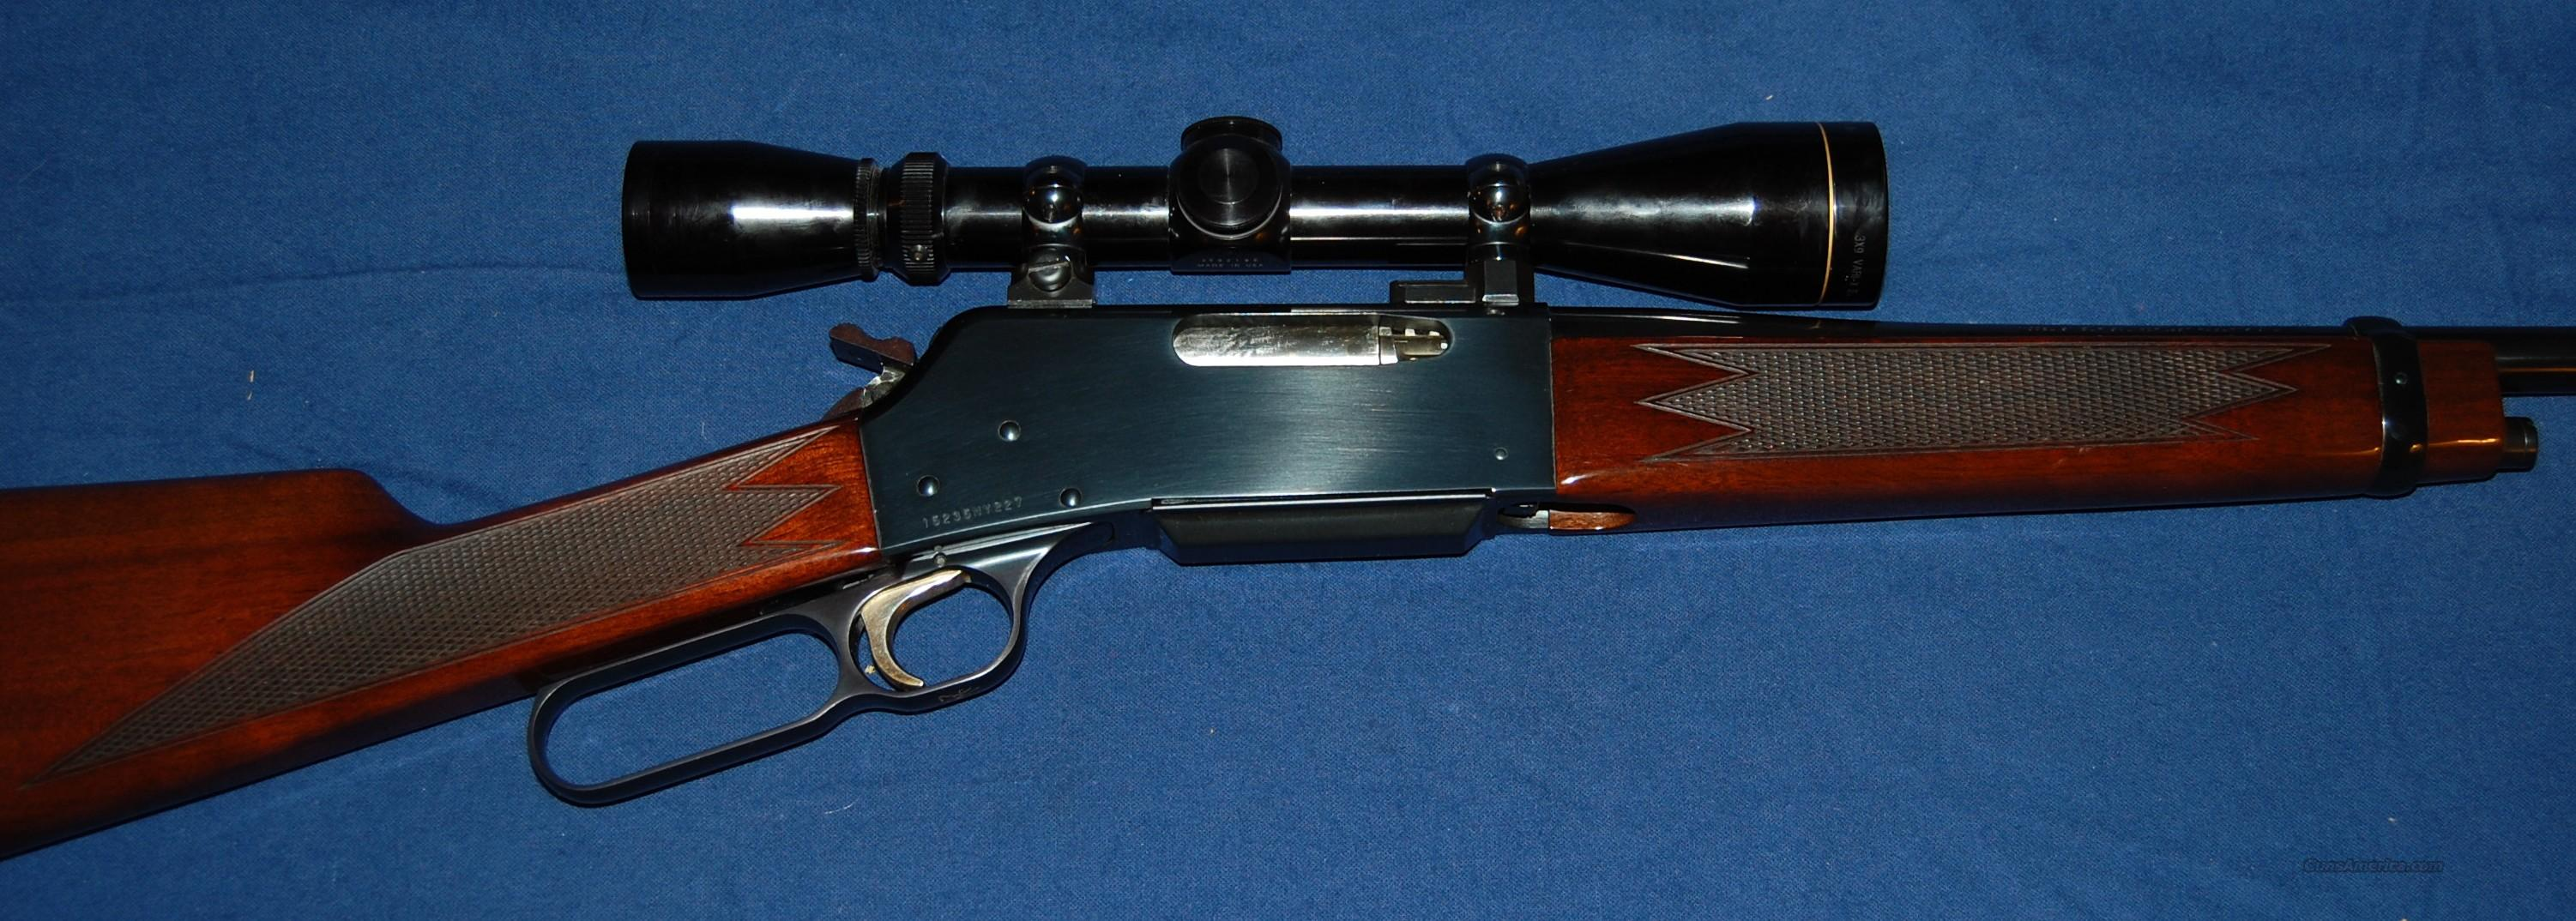 Browning BLR 81, 257 Roberts  Guns > Rifles > Browning Rifles > Lever Action